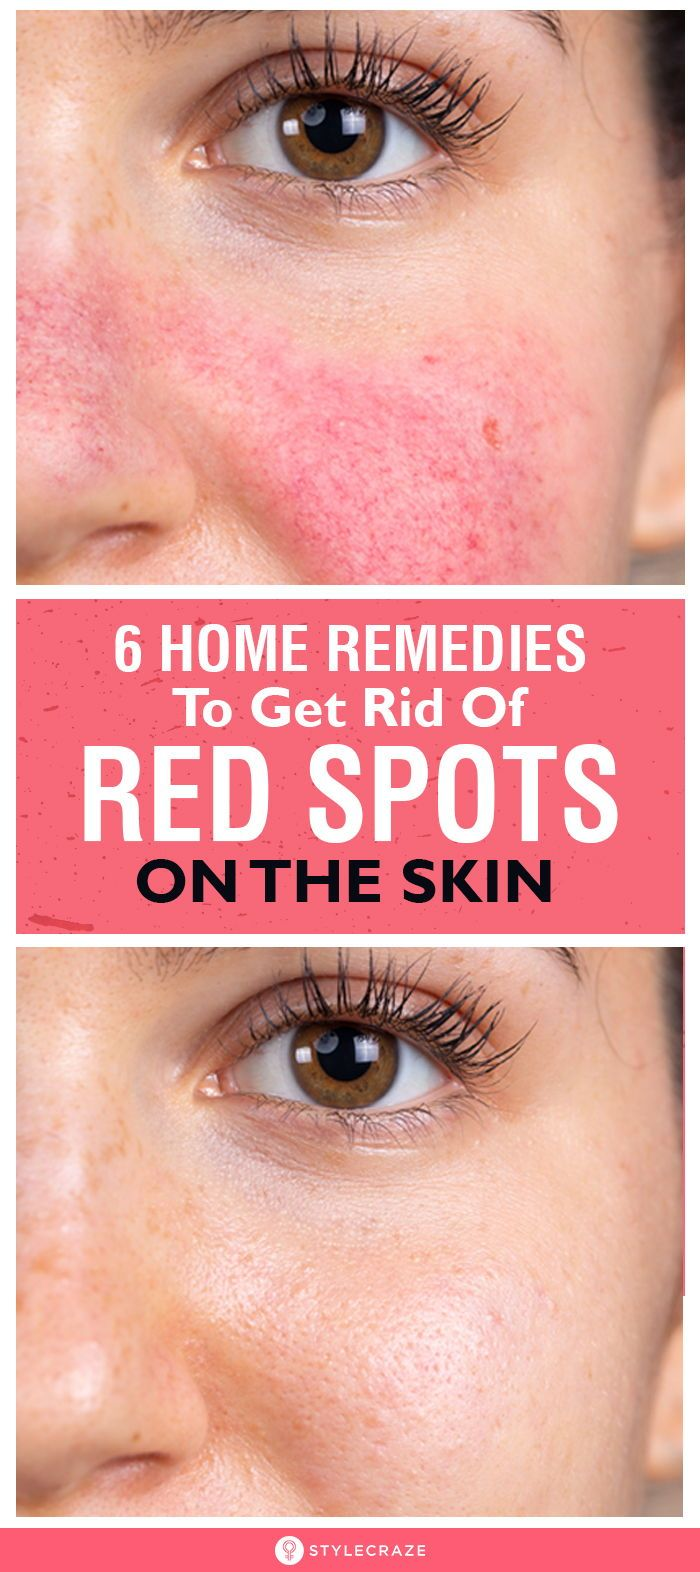 How To Get Rid Of Red Spots On Face: 6 Home Remedies And Tips